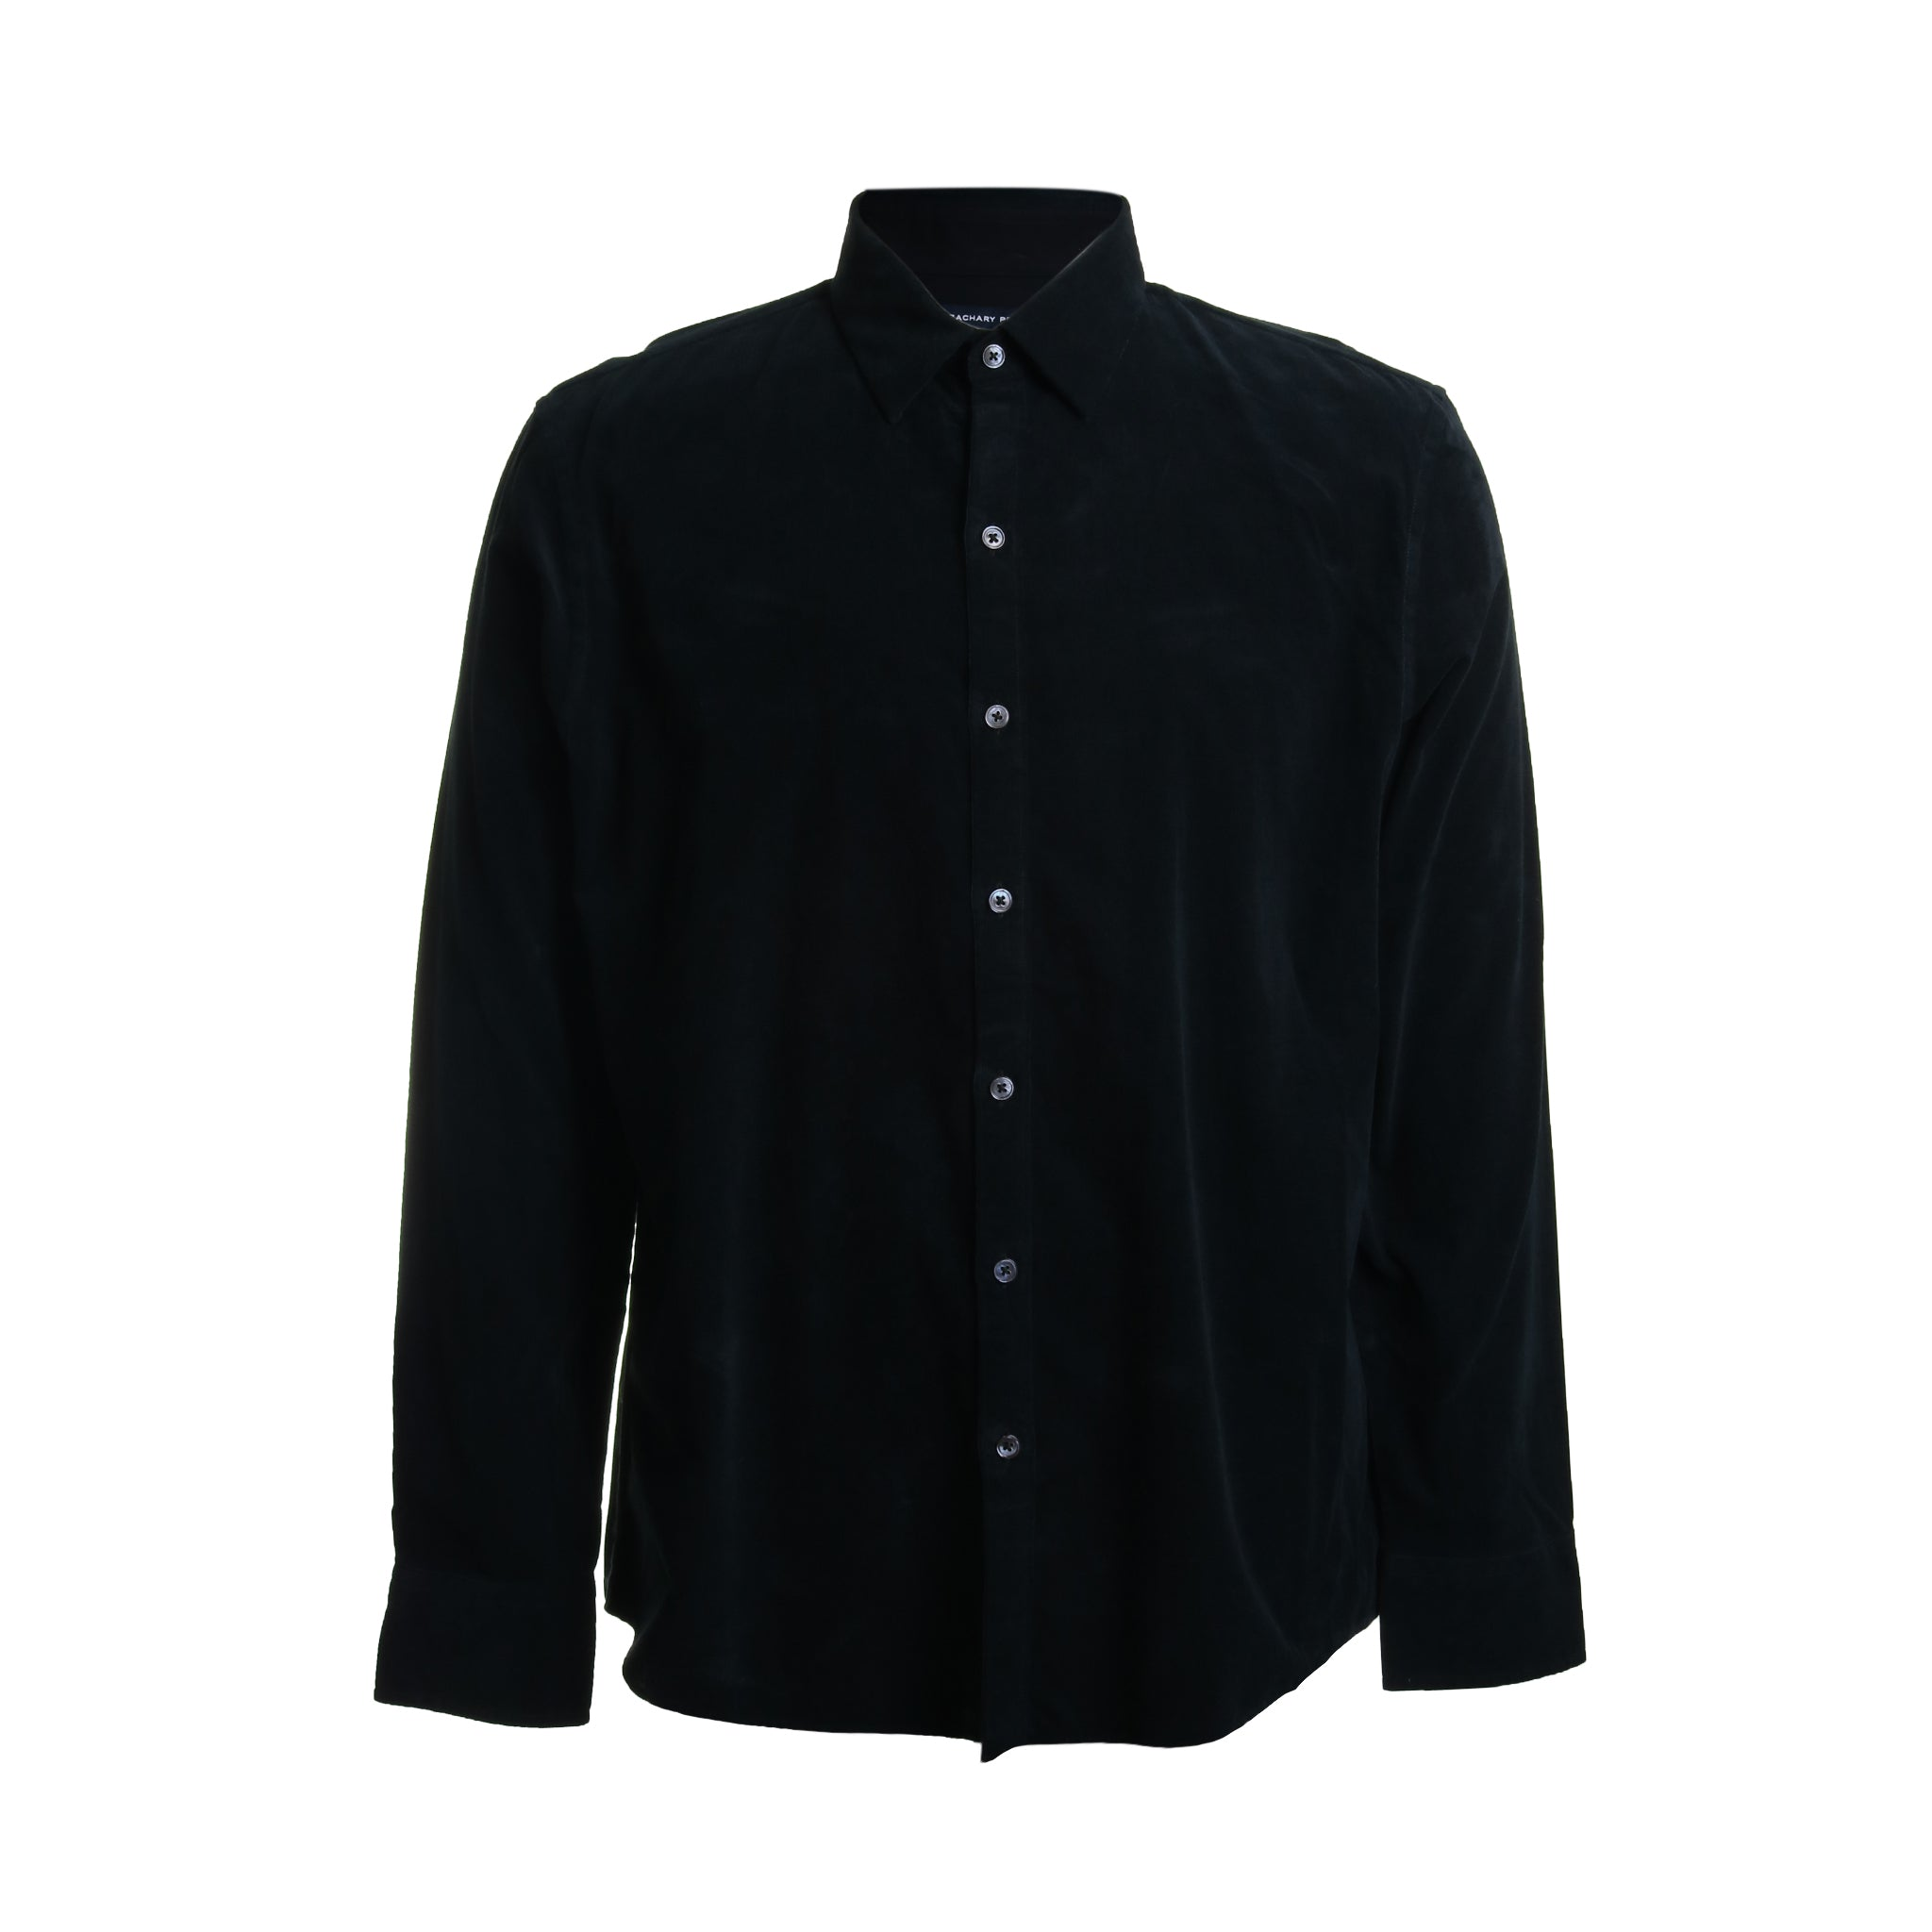 Akiti Micro Corduroy Button Down Shirt